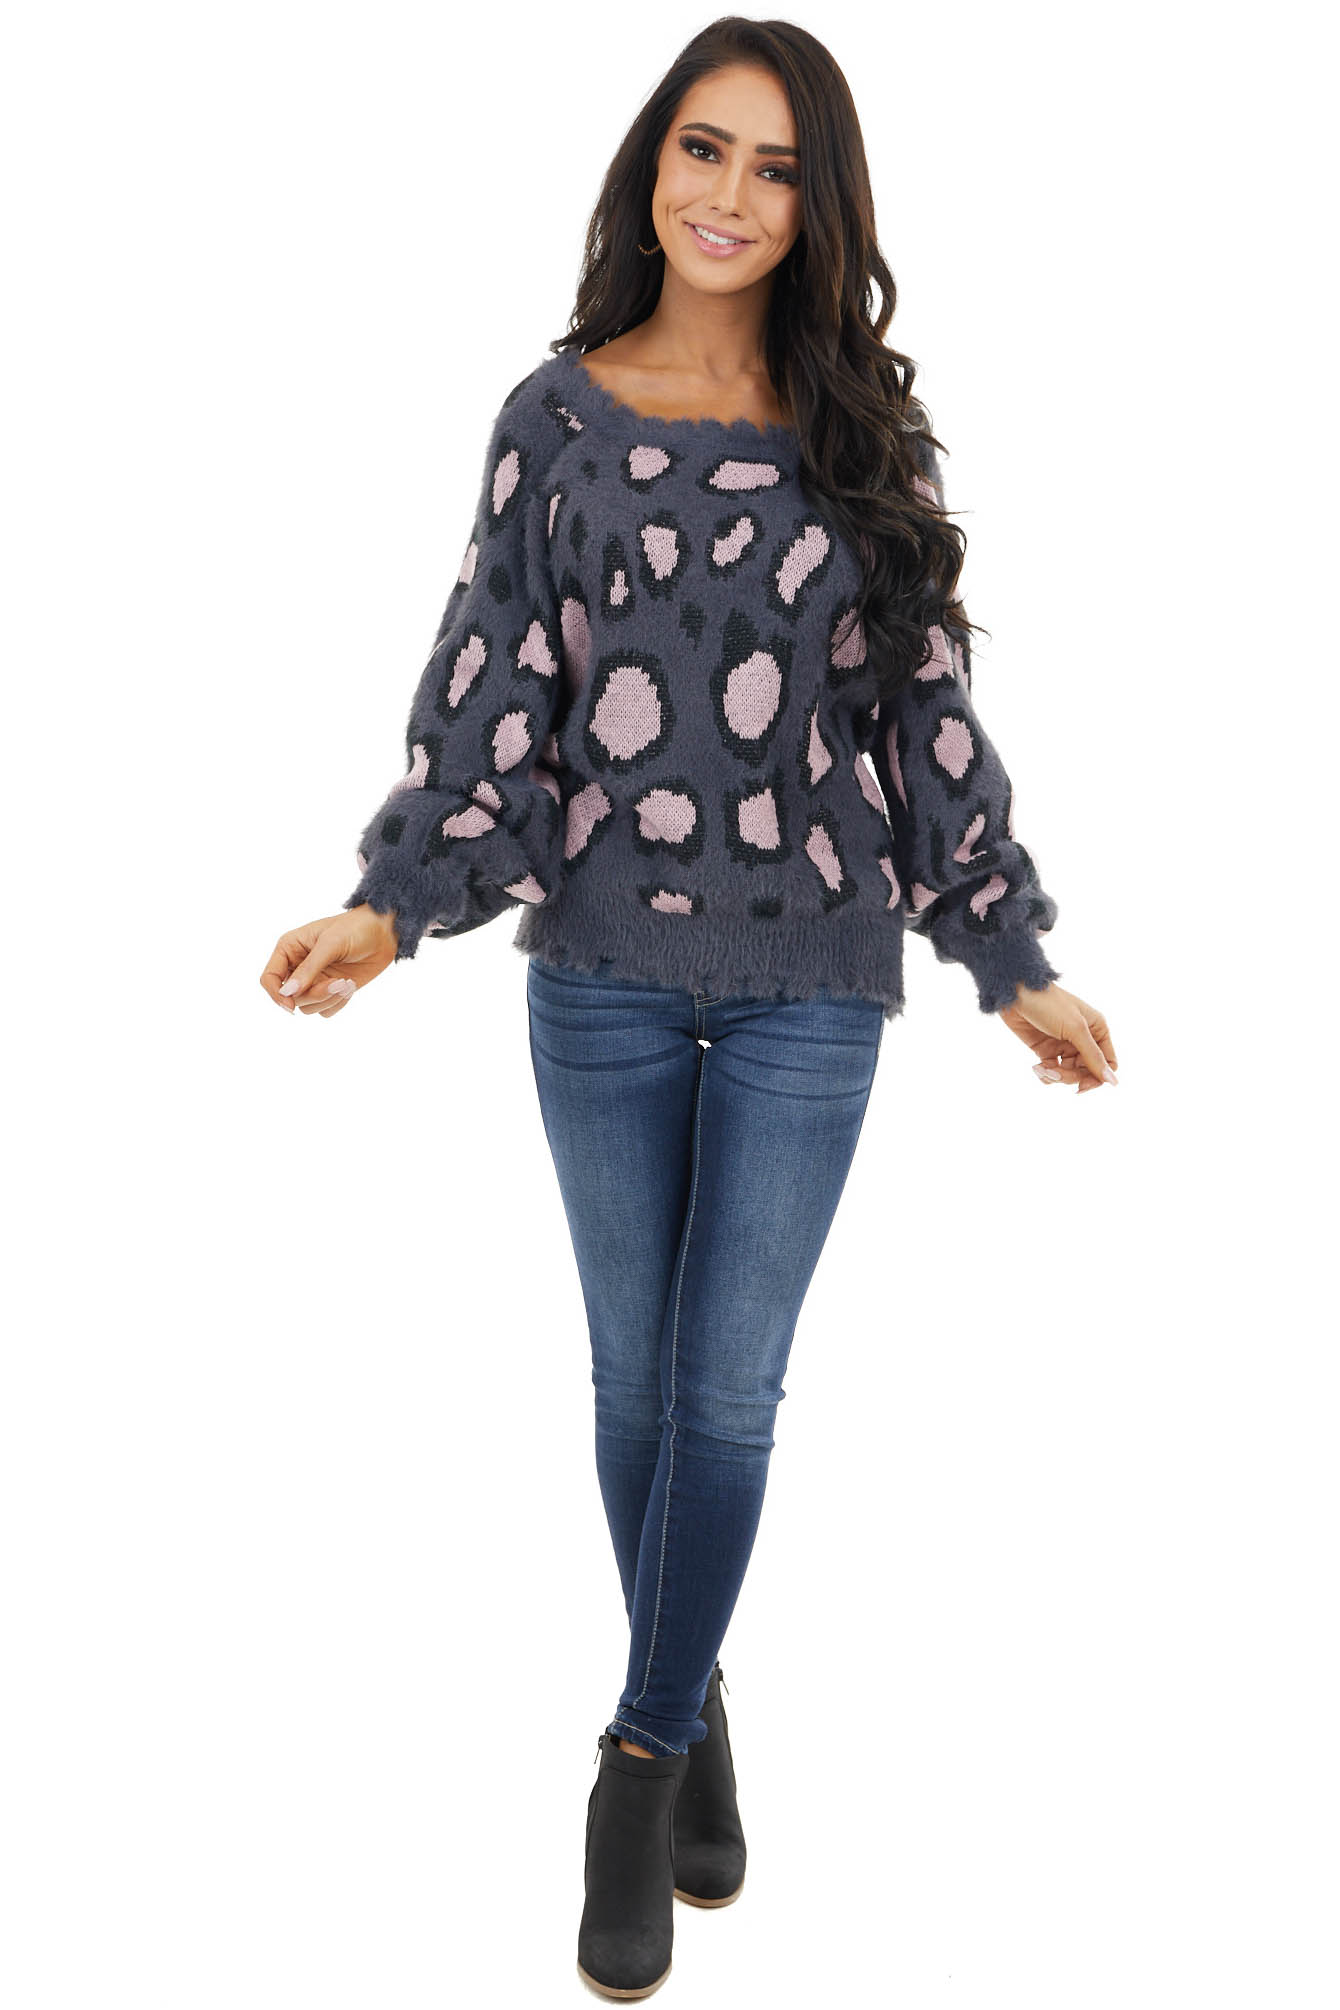 Charcoal and Blush Leopard Print Fuzzy Knit Sweater